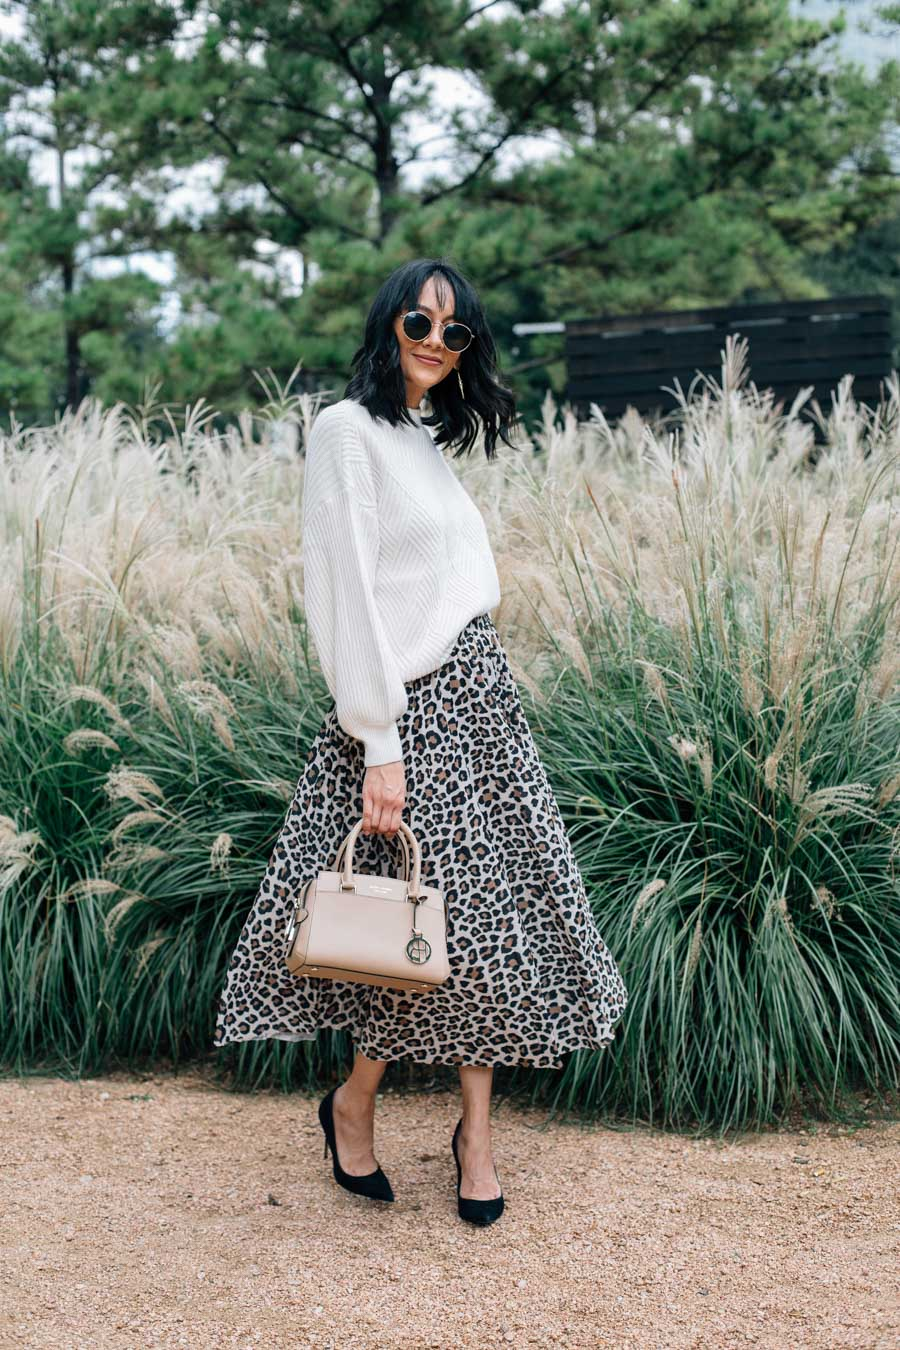 How to wear a leopard print skirt for fall.